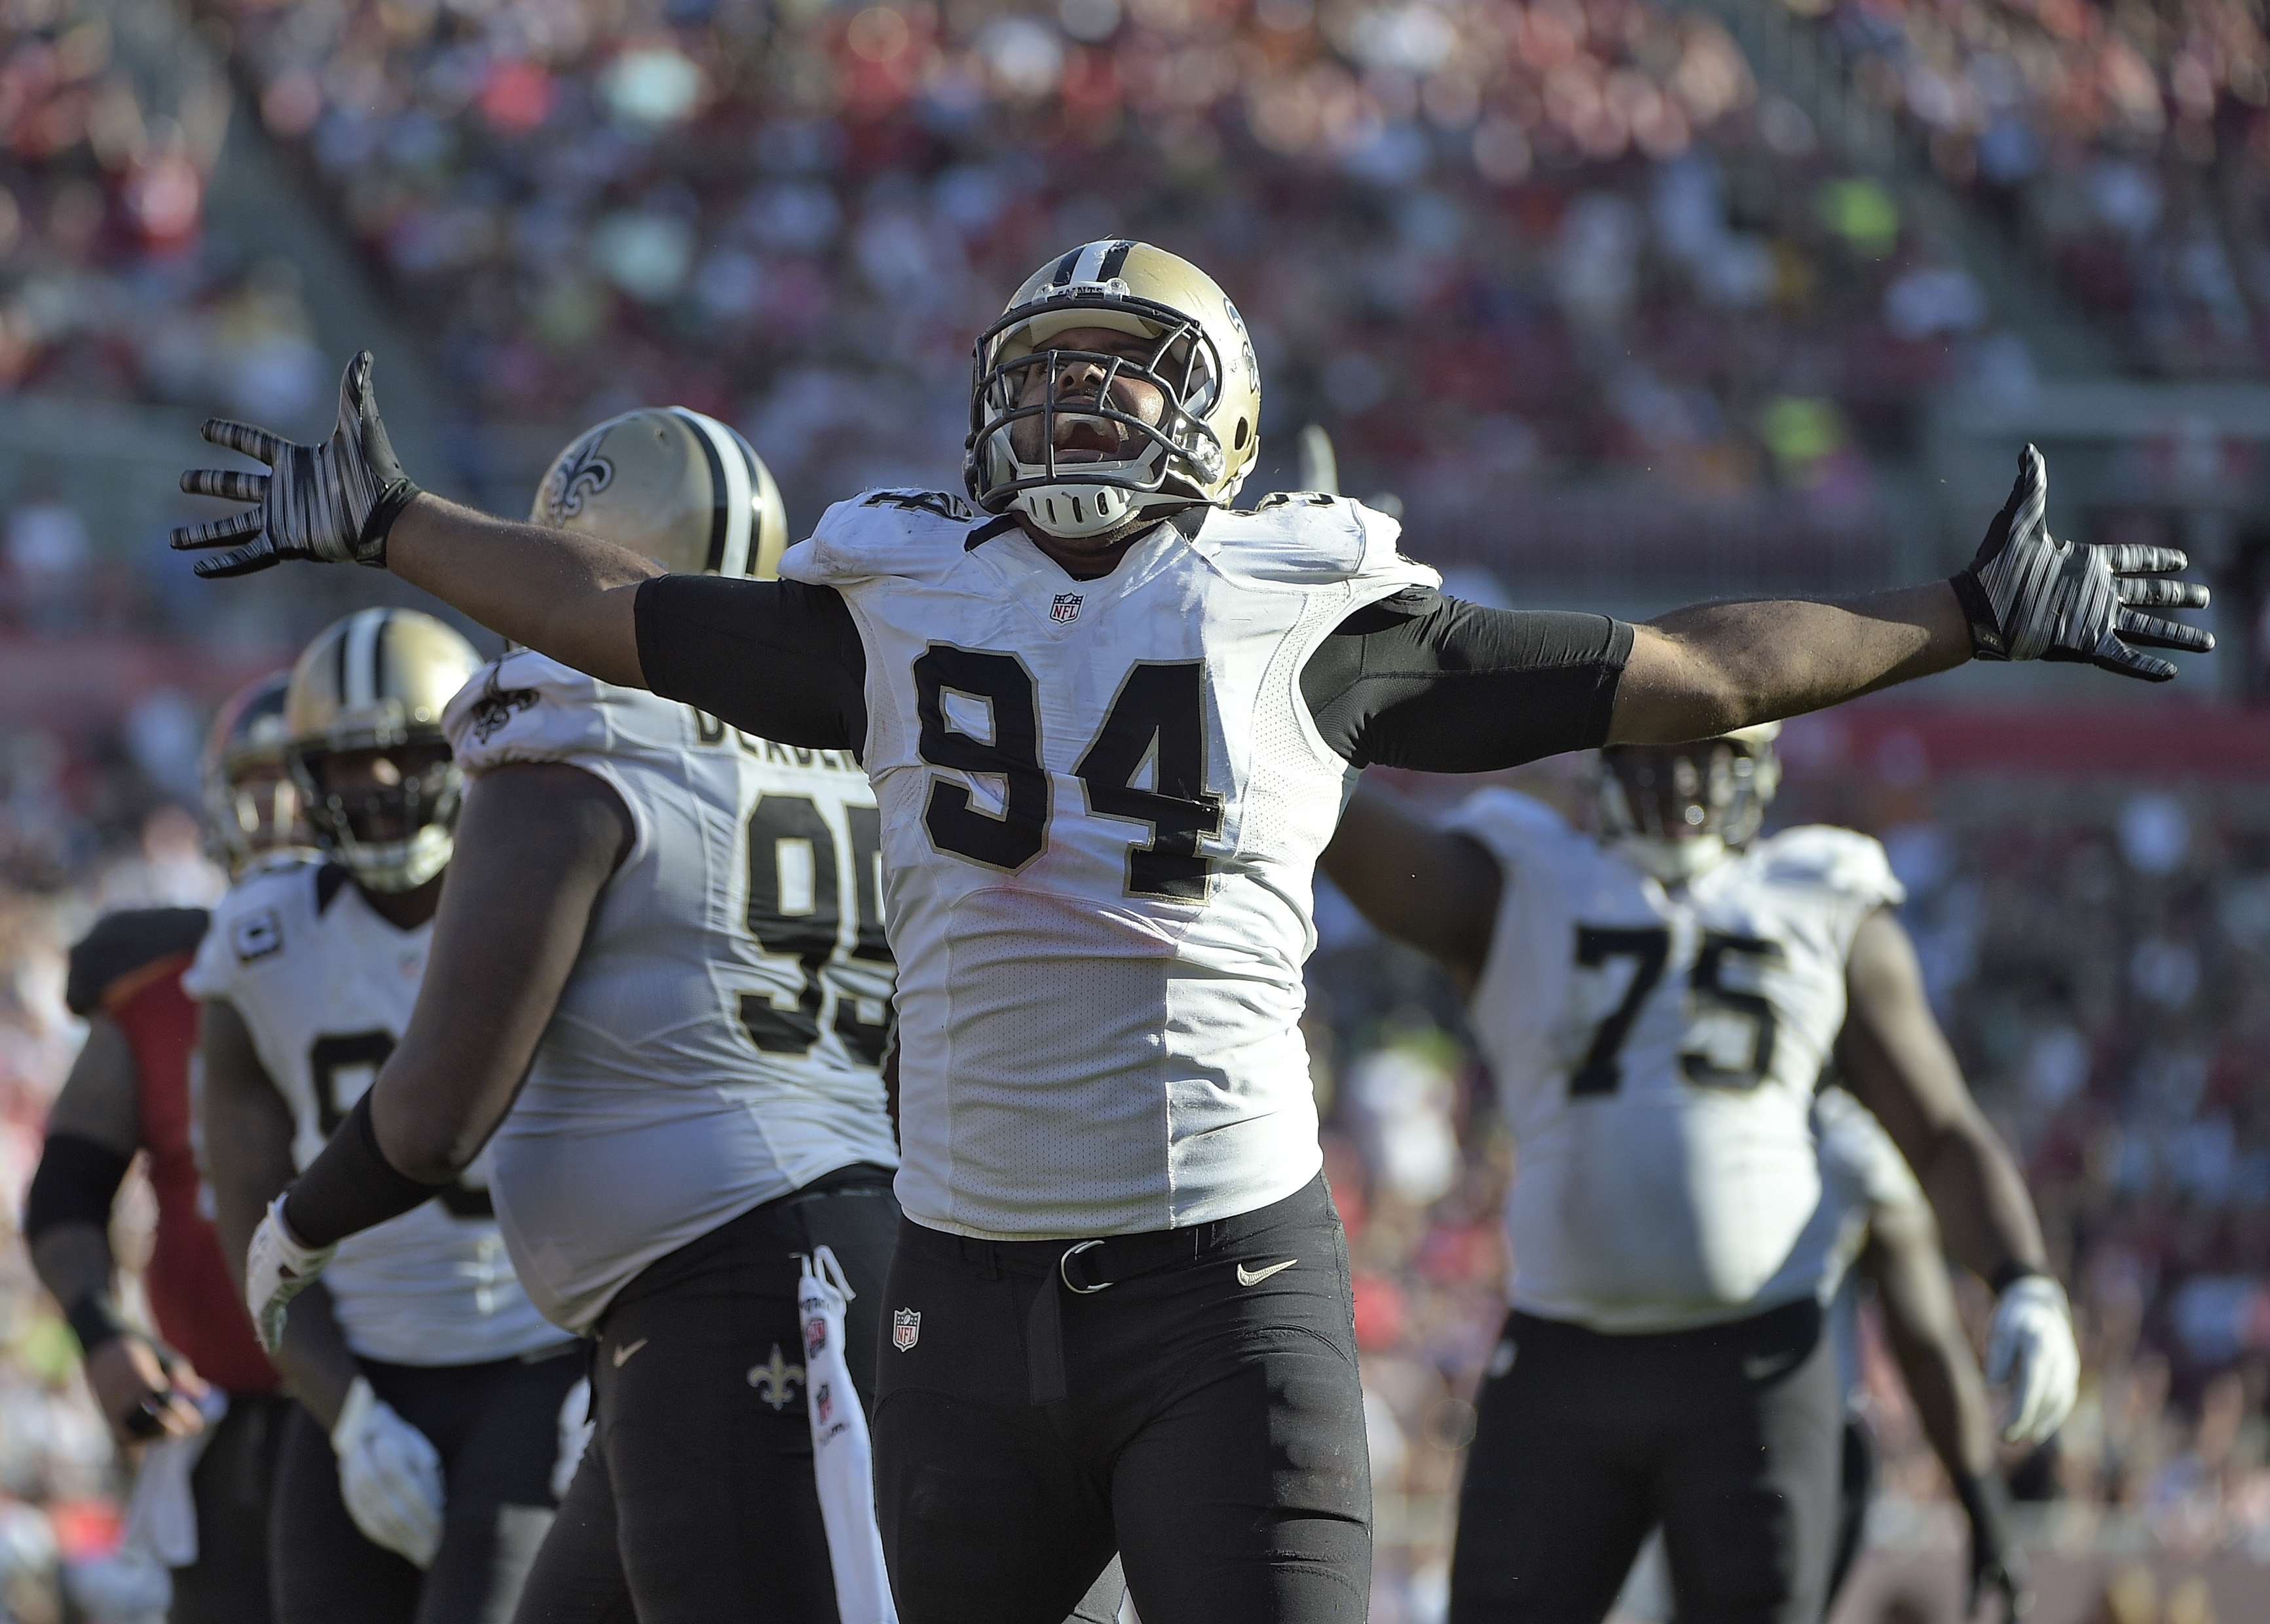 New Orleans Saints defensive end Cameron Jordan (94) celebrates after stopping the Tampa Bay Buccaneers on a run during the fourth quarter of an NFL football game Sunday, Dec. 28, 2014, in Tampa, Fla. (AP Photo/Phelan M. Ebenhack)